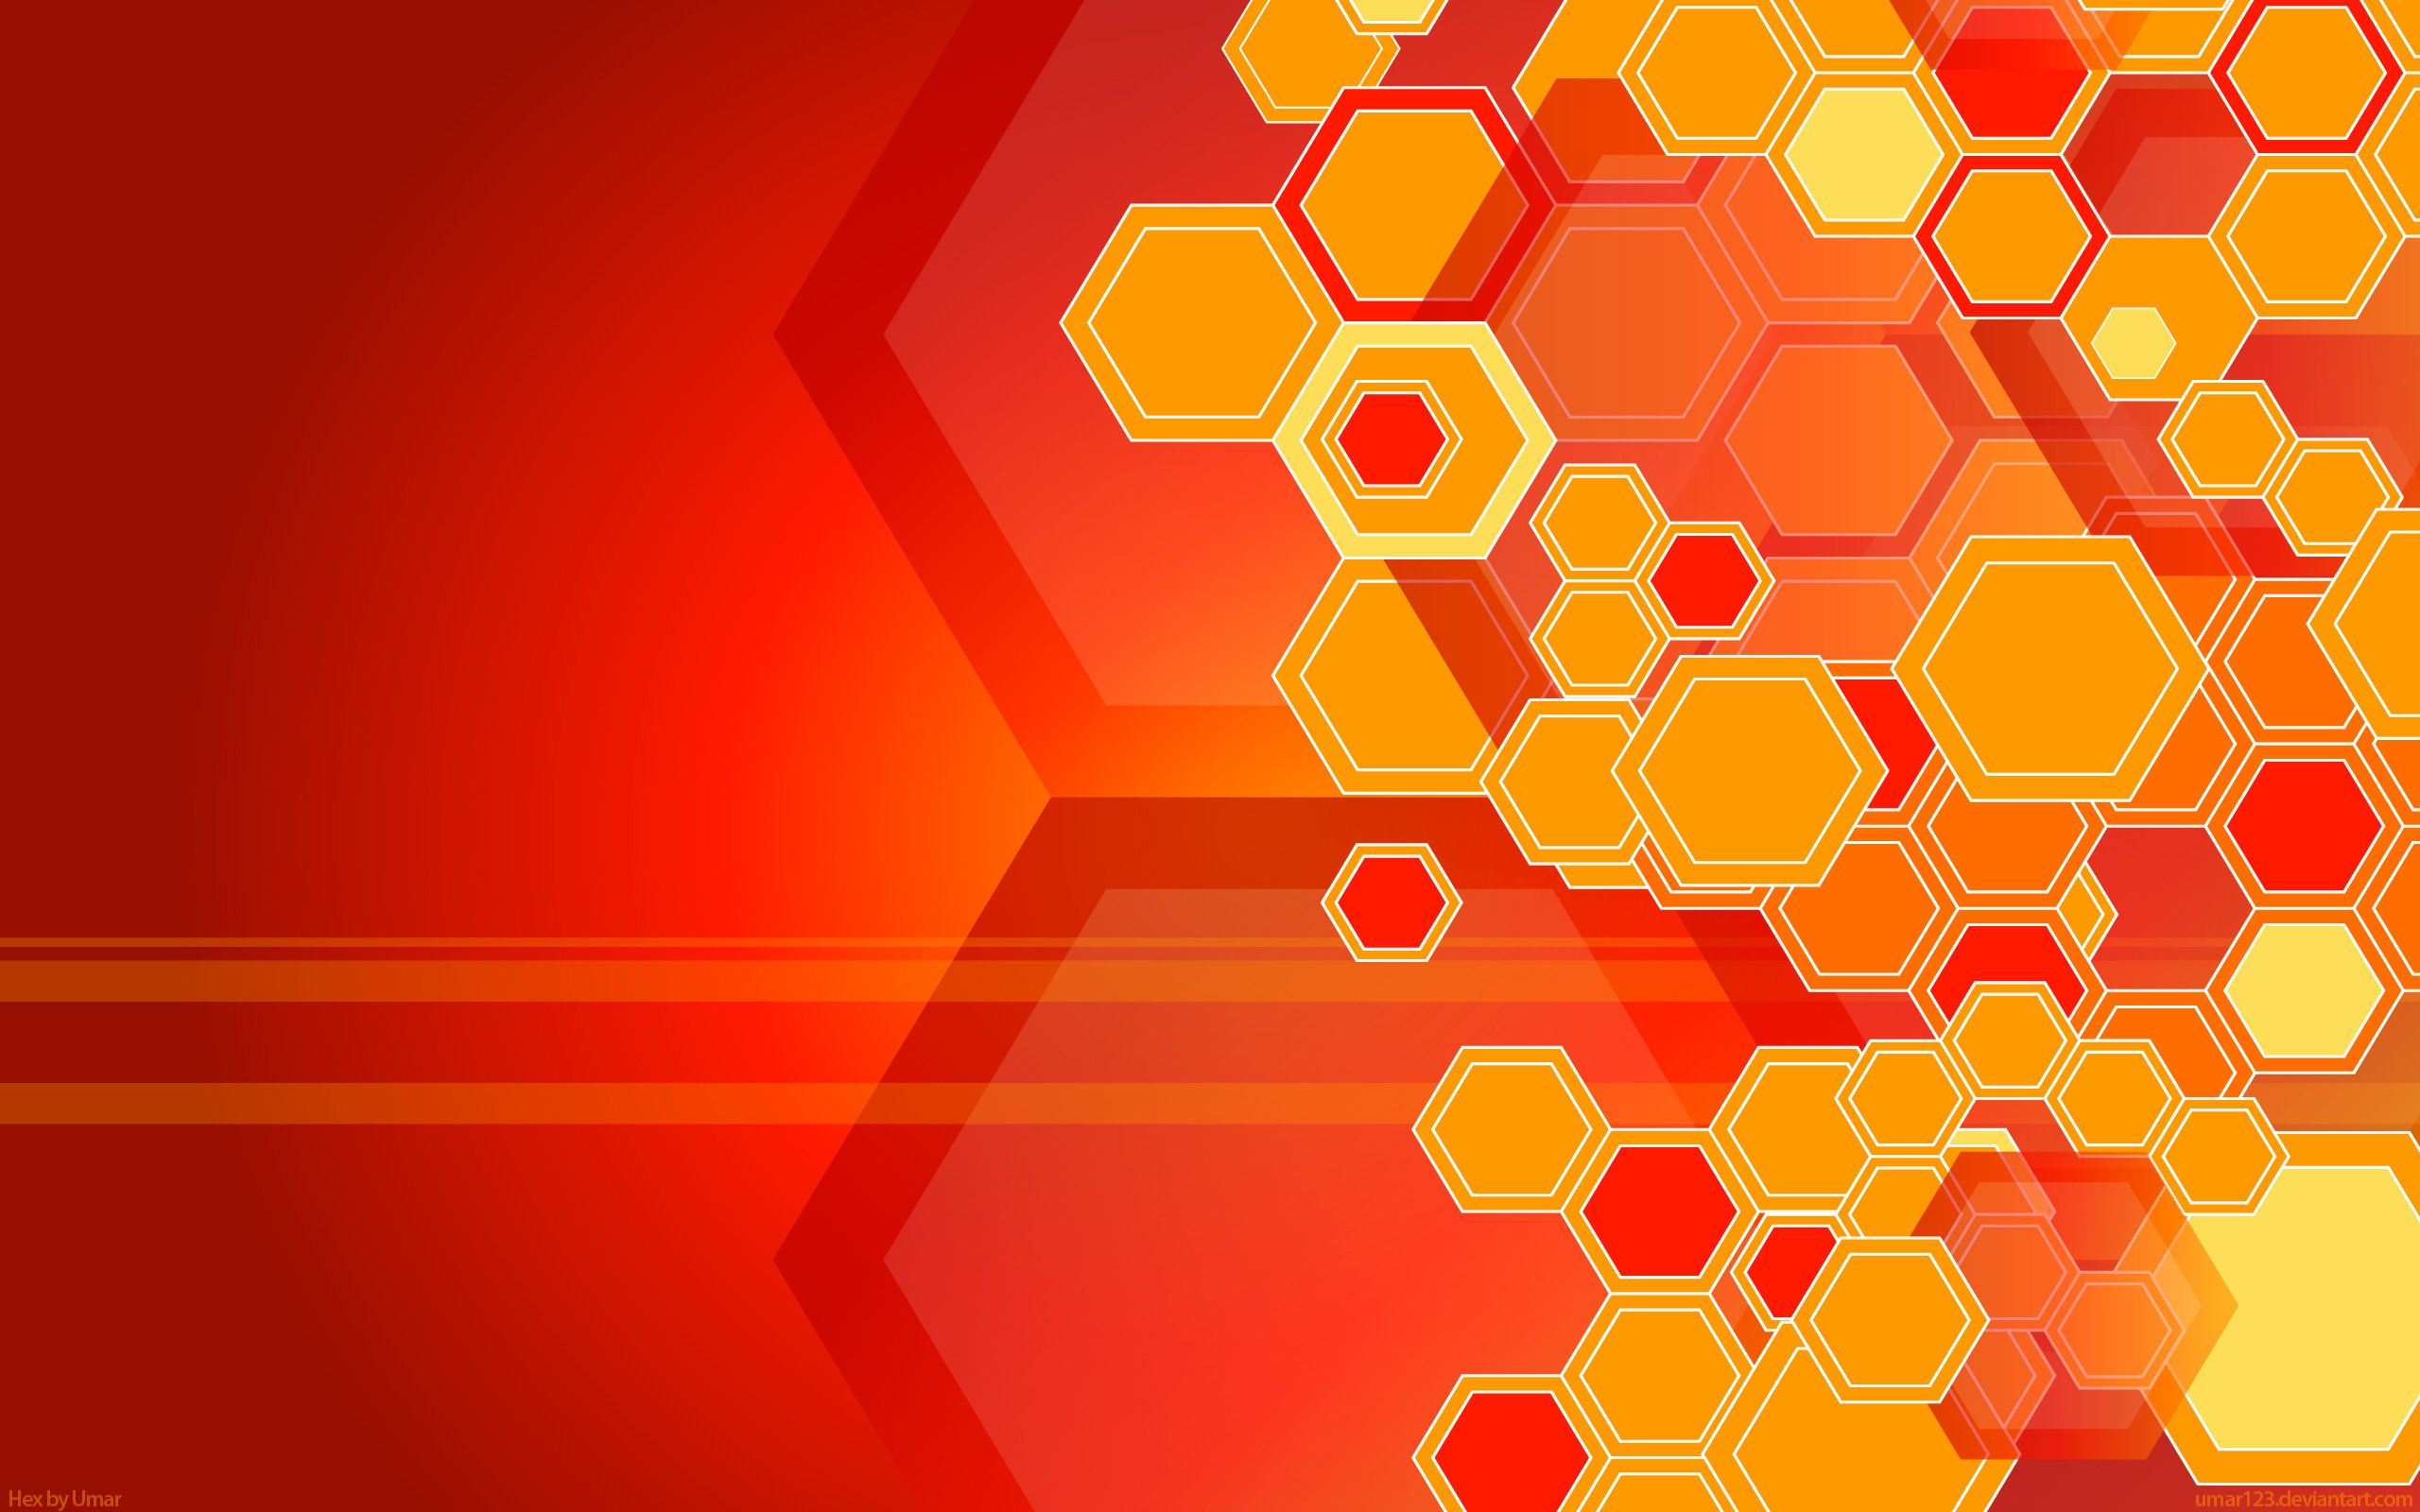 New Abstract Wallpaper With Hexagon Shape In Red And Yellow